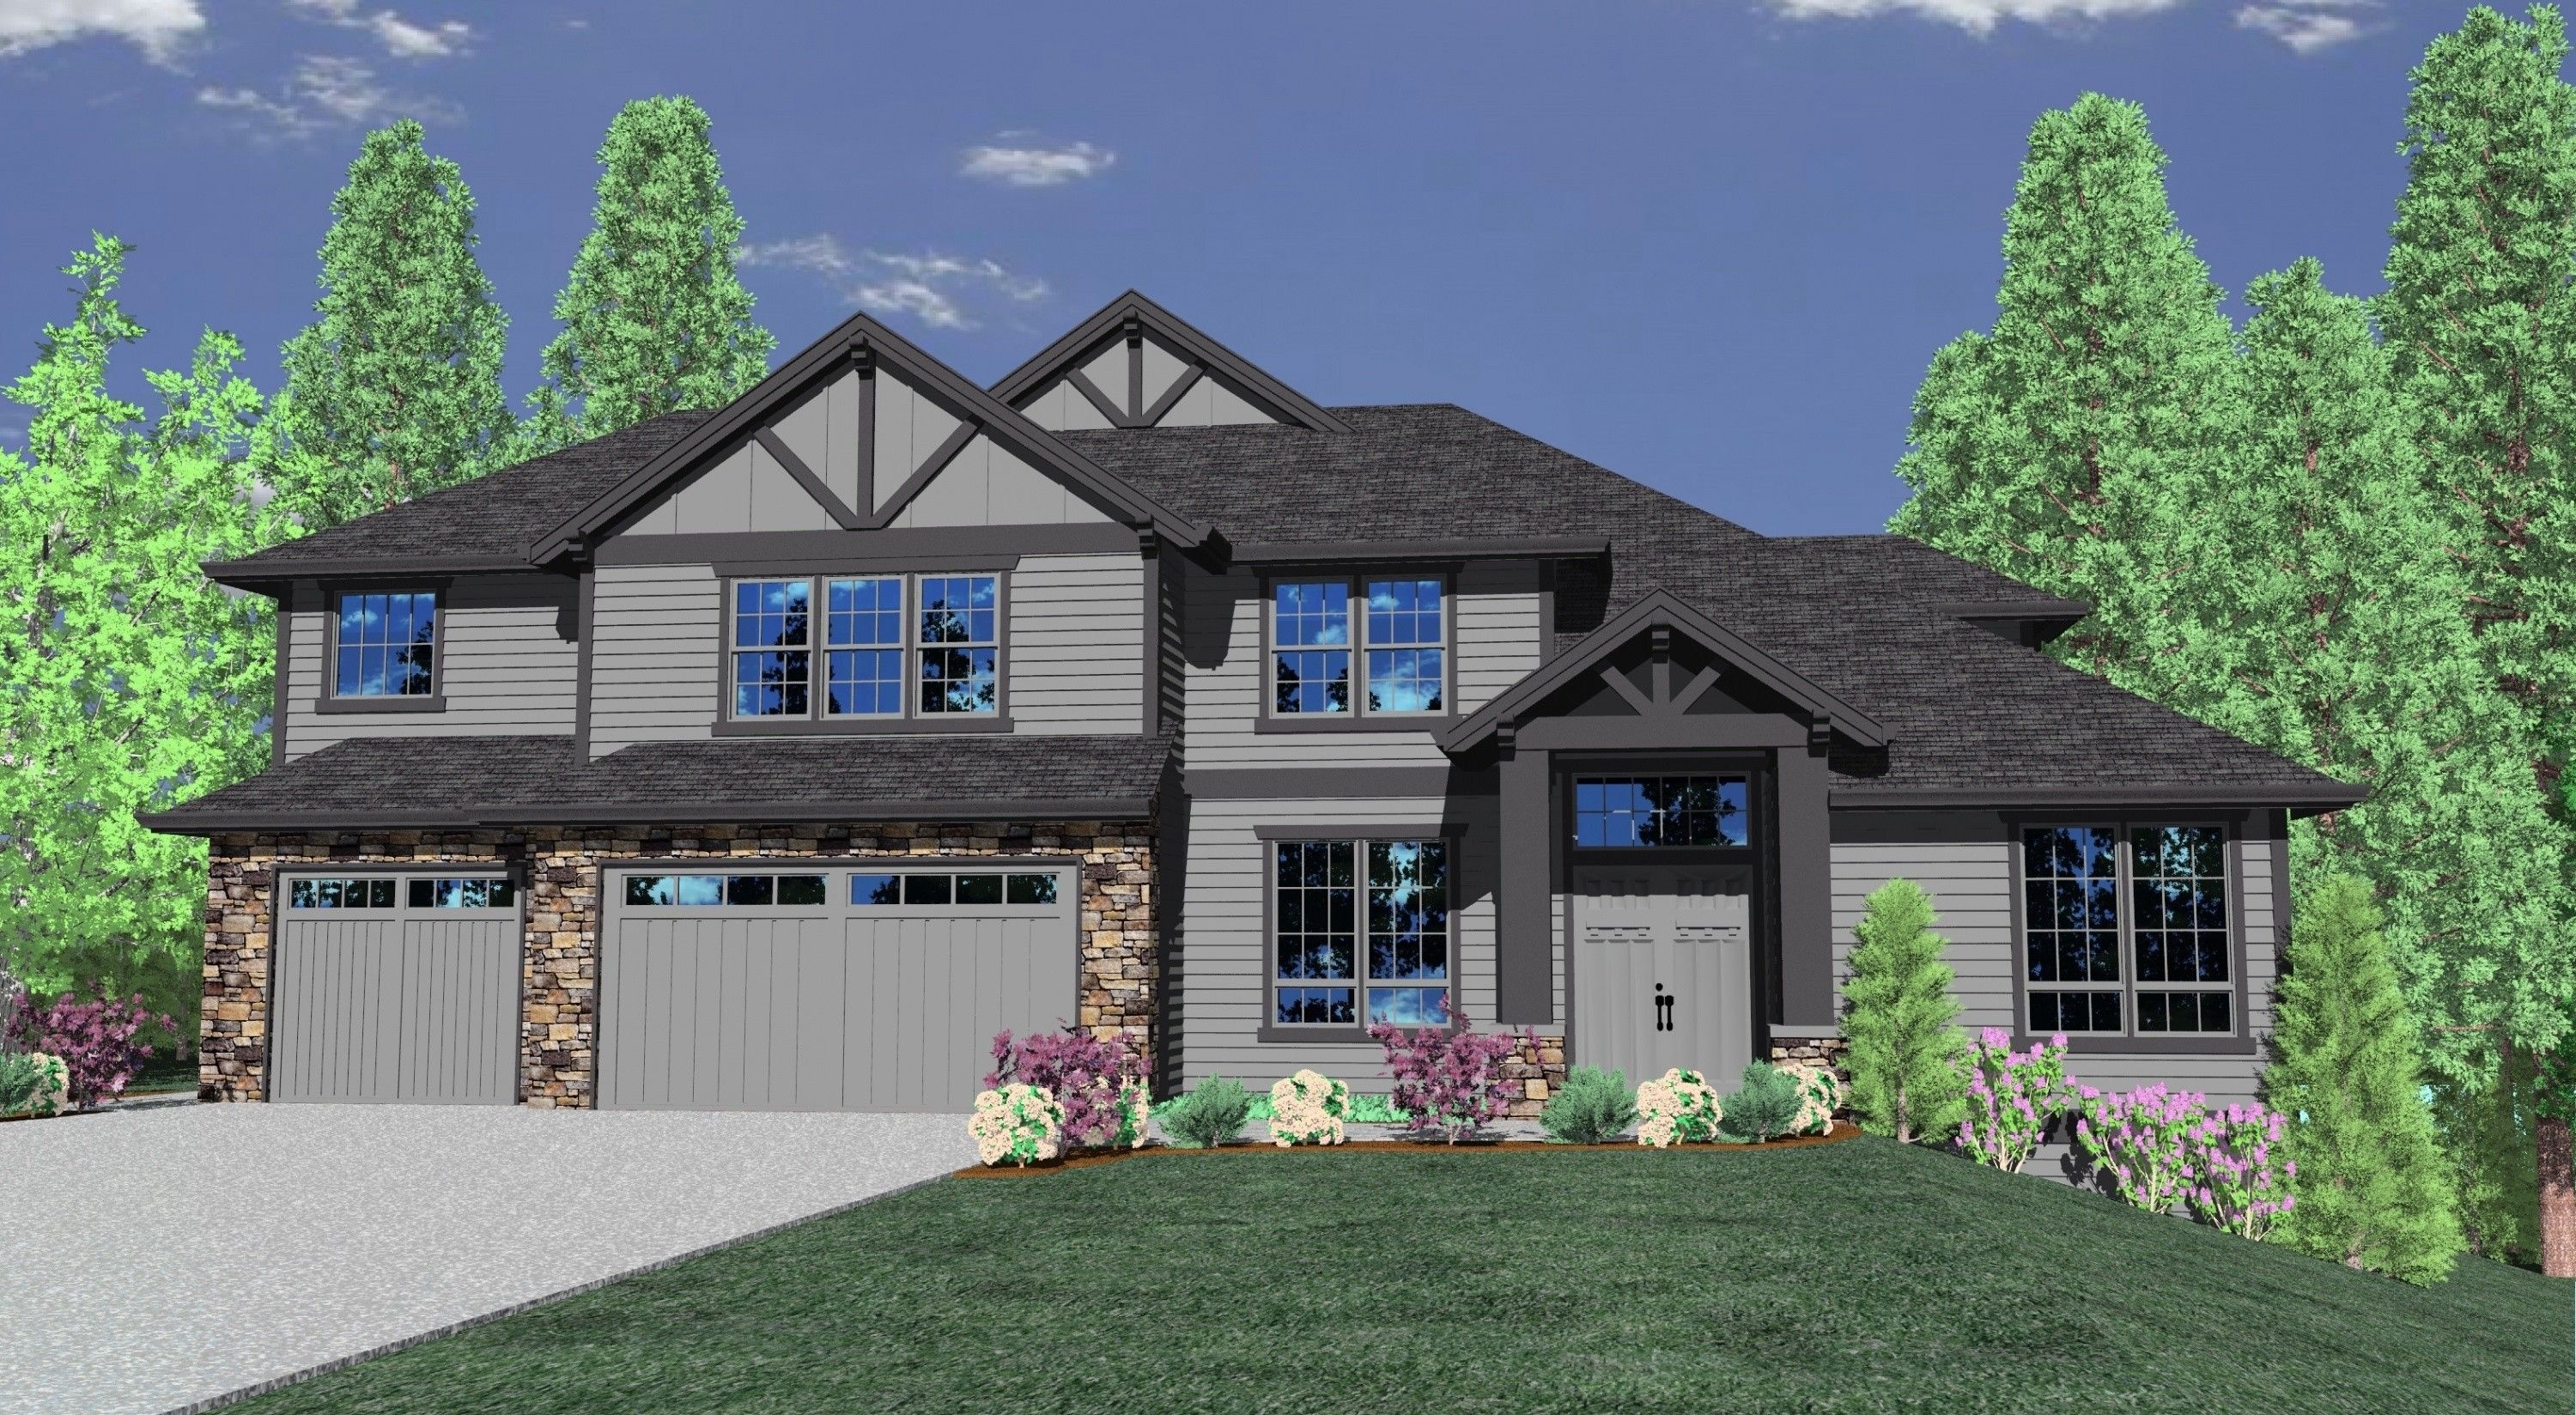 M 3876gfh house plan transitional house plans for Transitional house plans